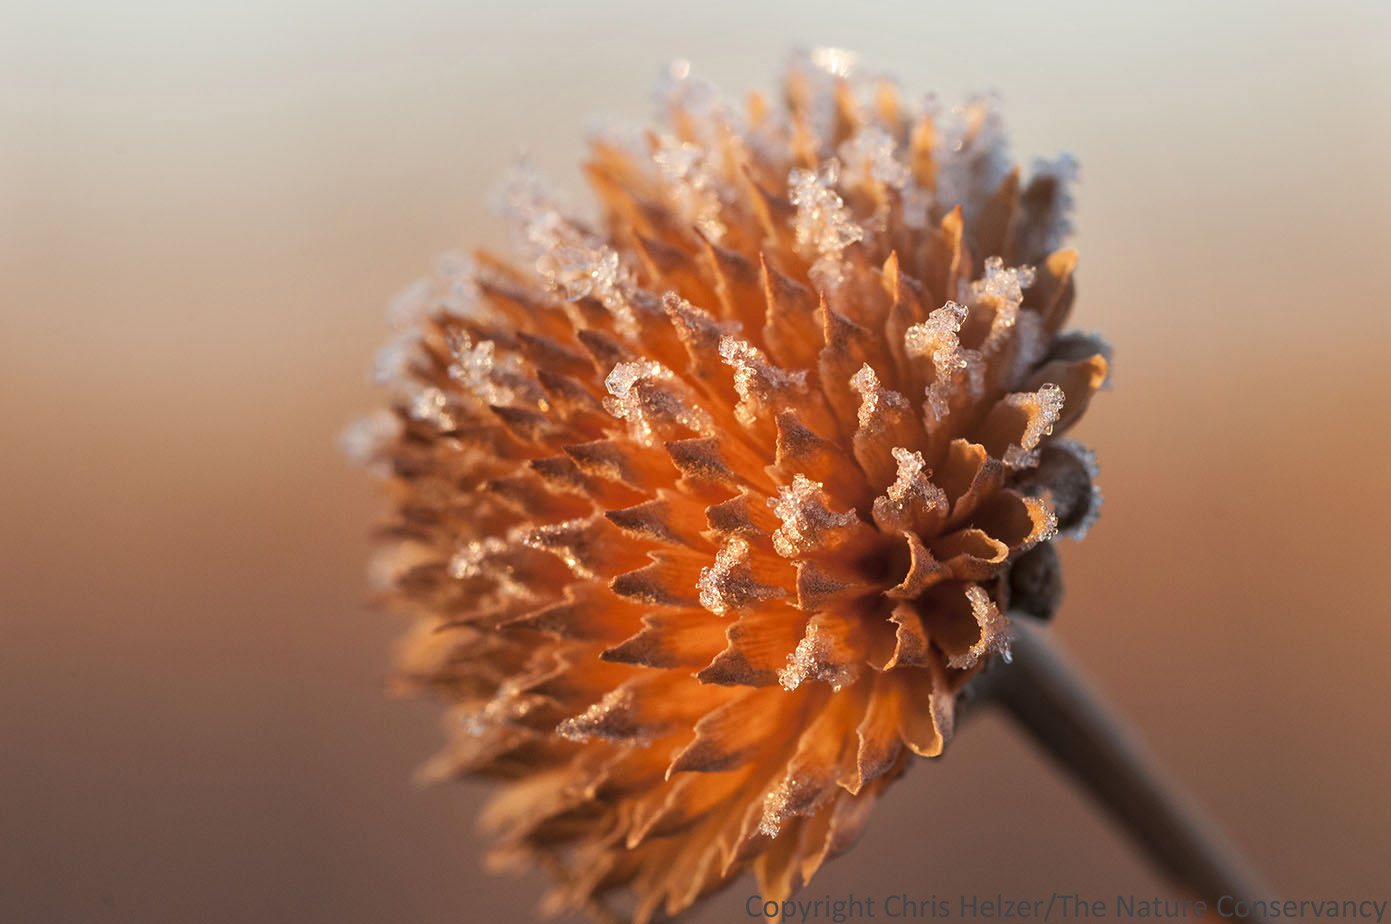 A sunflower seed head